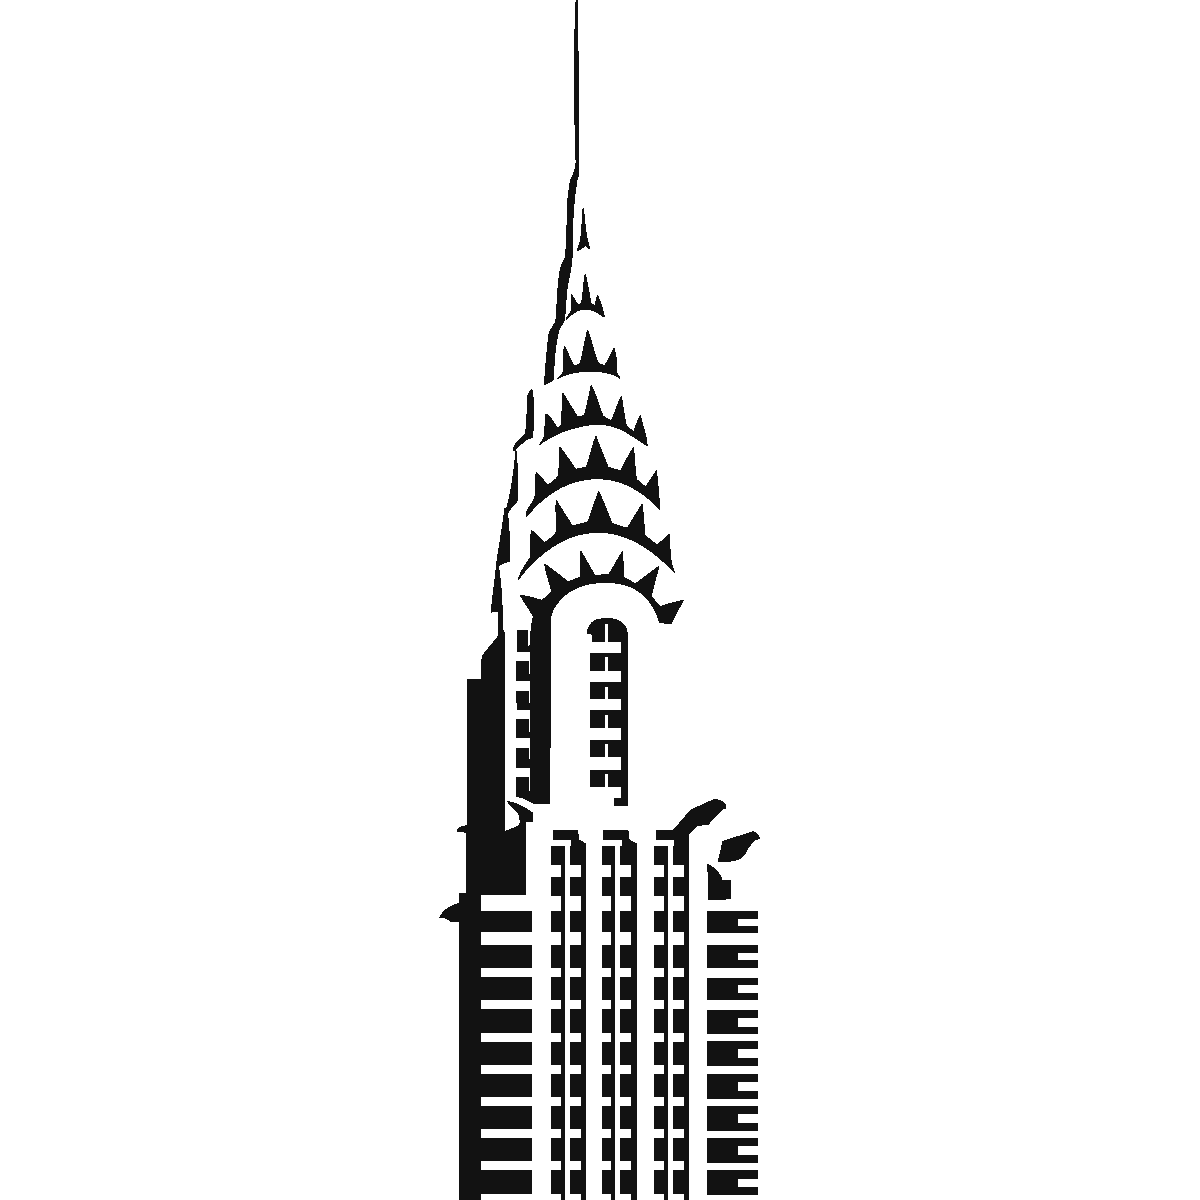 chrysler building drawing - Google Search | New york ...